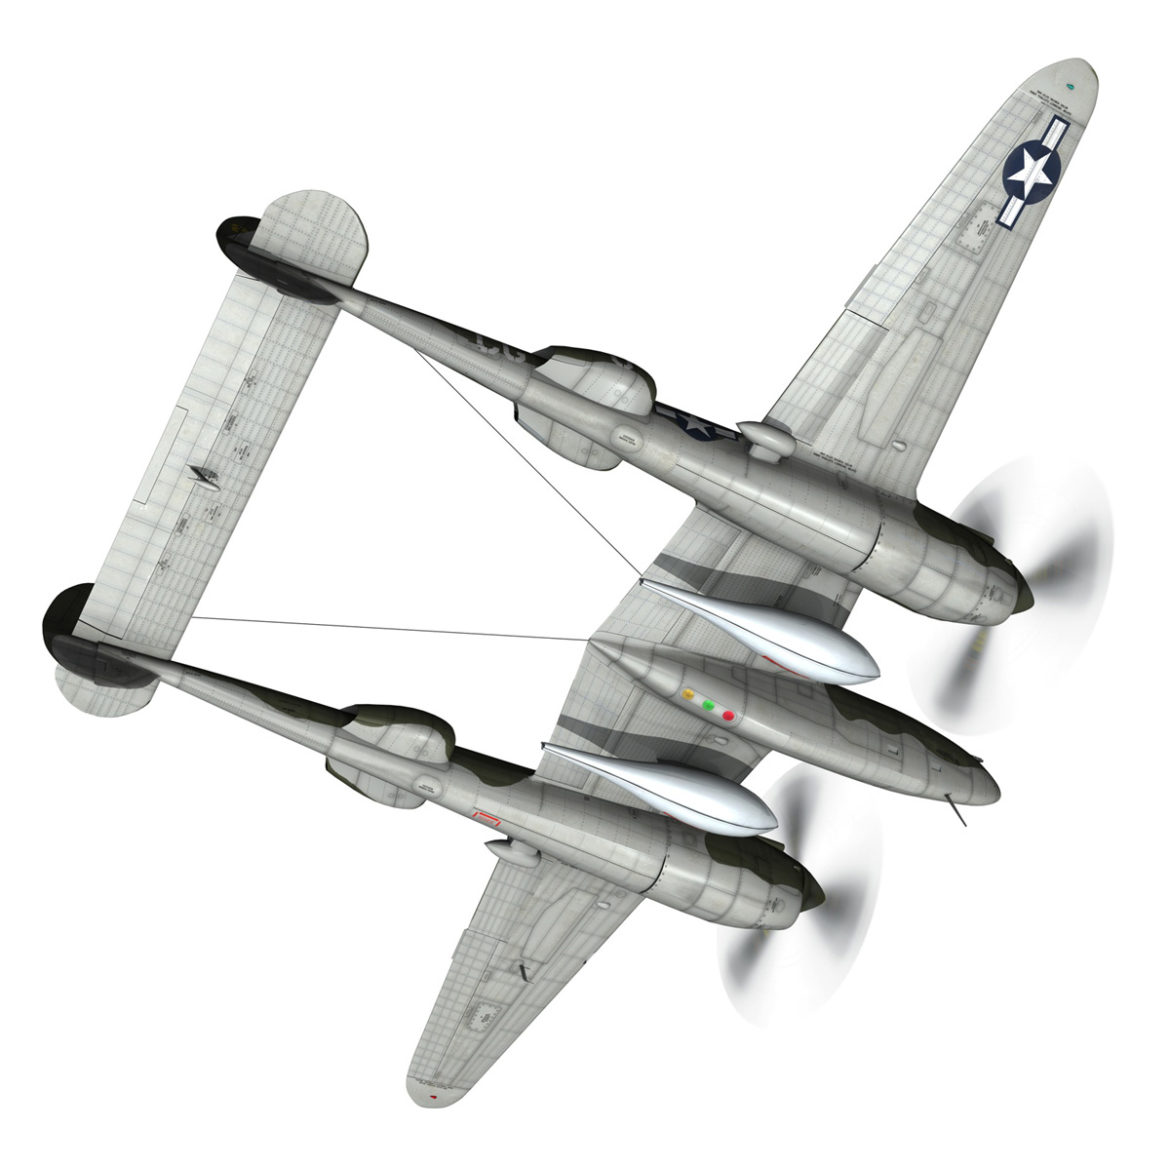 lockheed p-38 lightning – journeys end 3d model fbx lwo lw lws obj c4d 304429